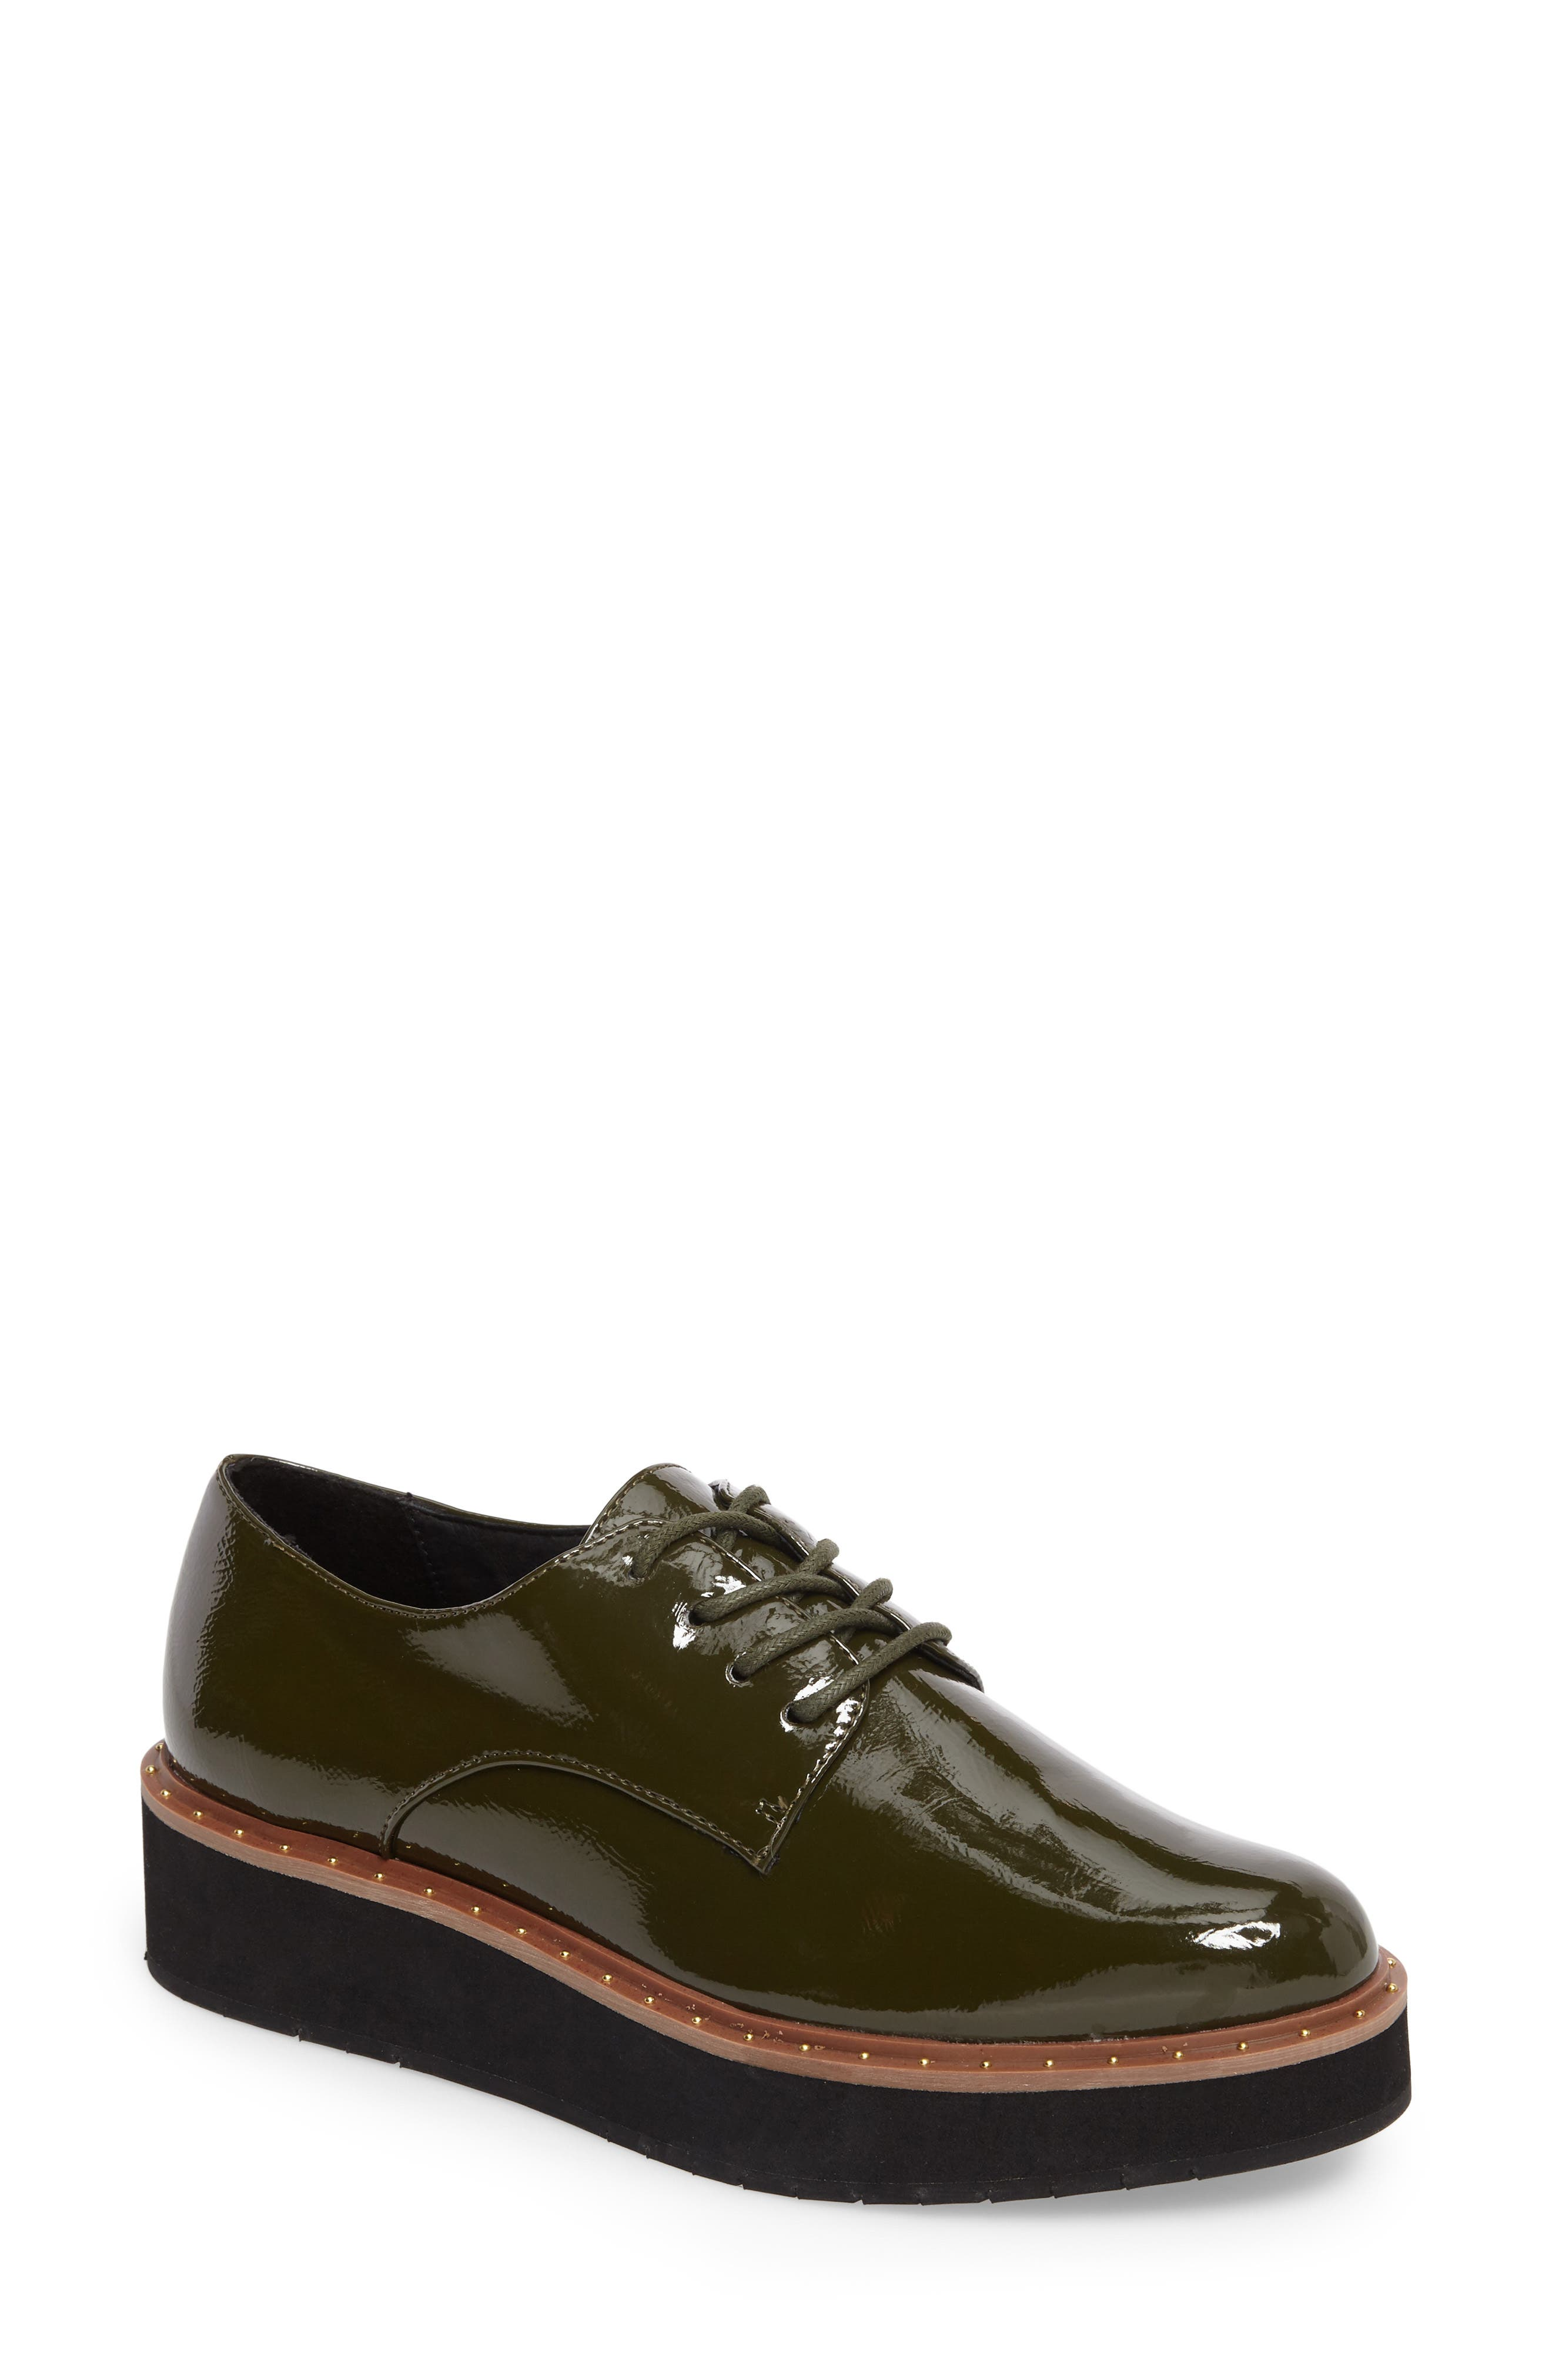 Chinese Laundry Cecilia Platform Oxford, Green